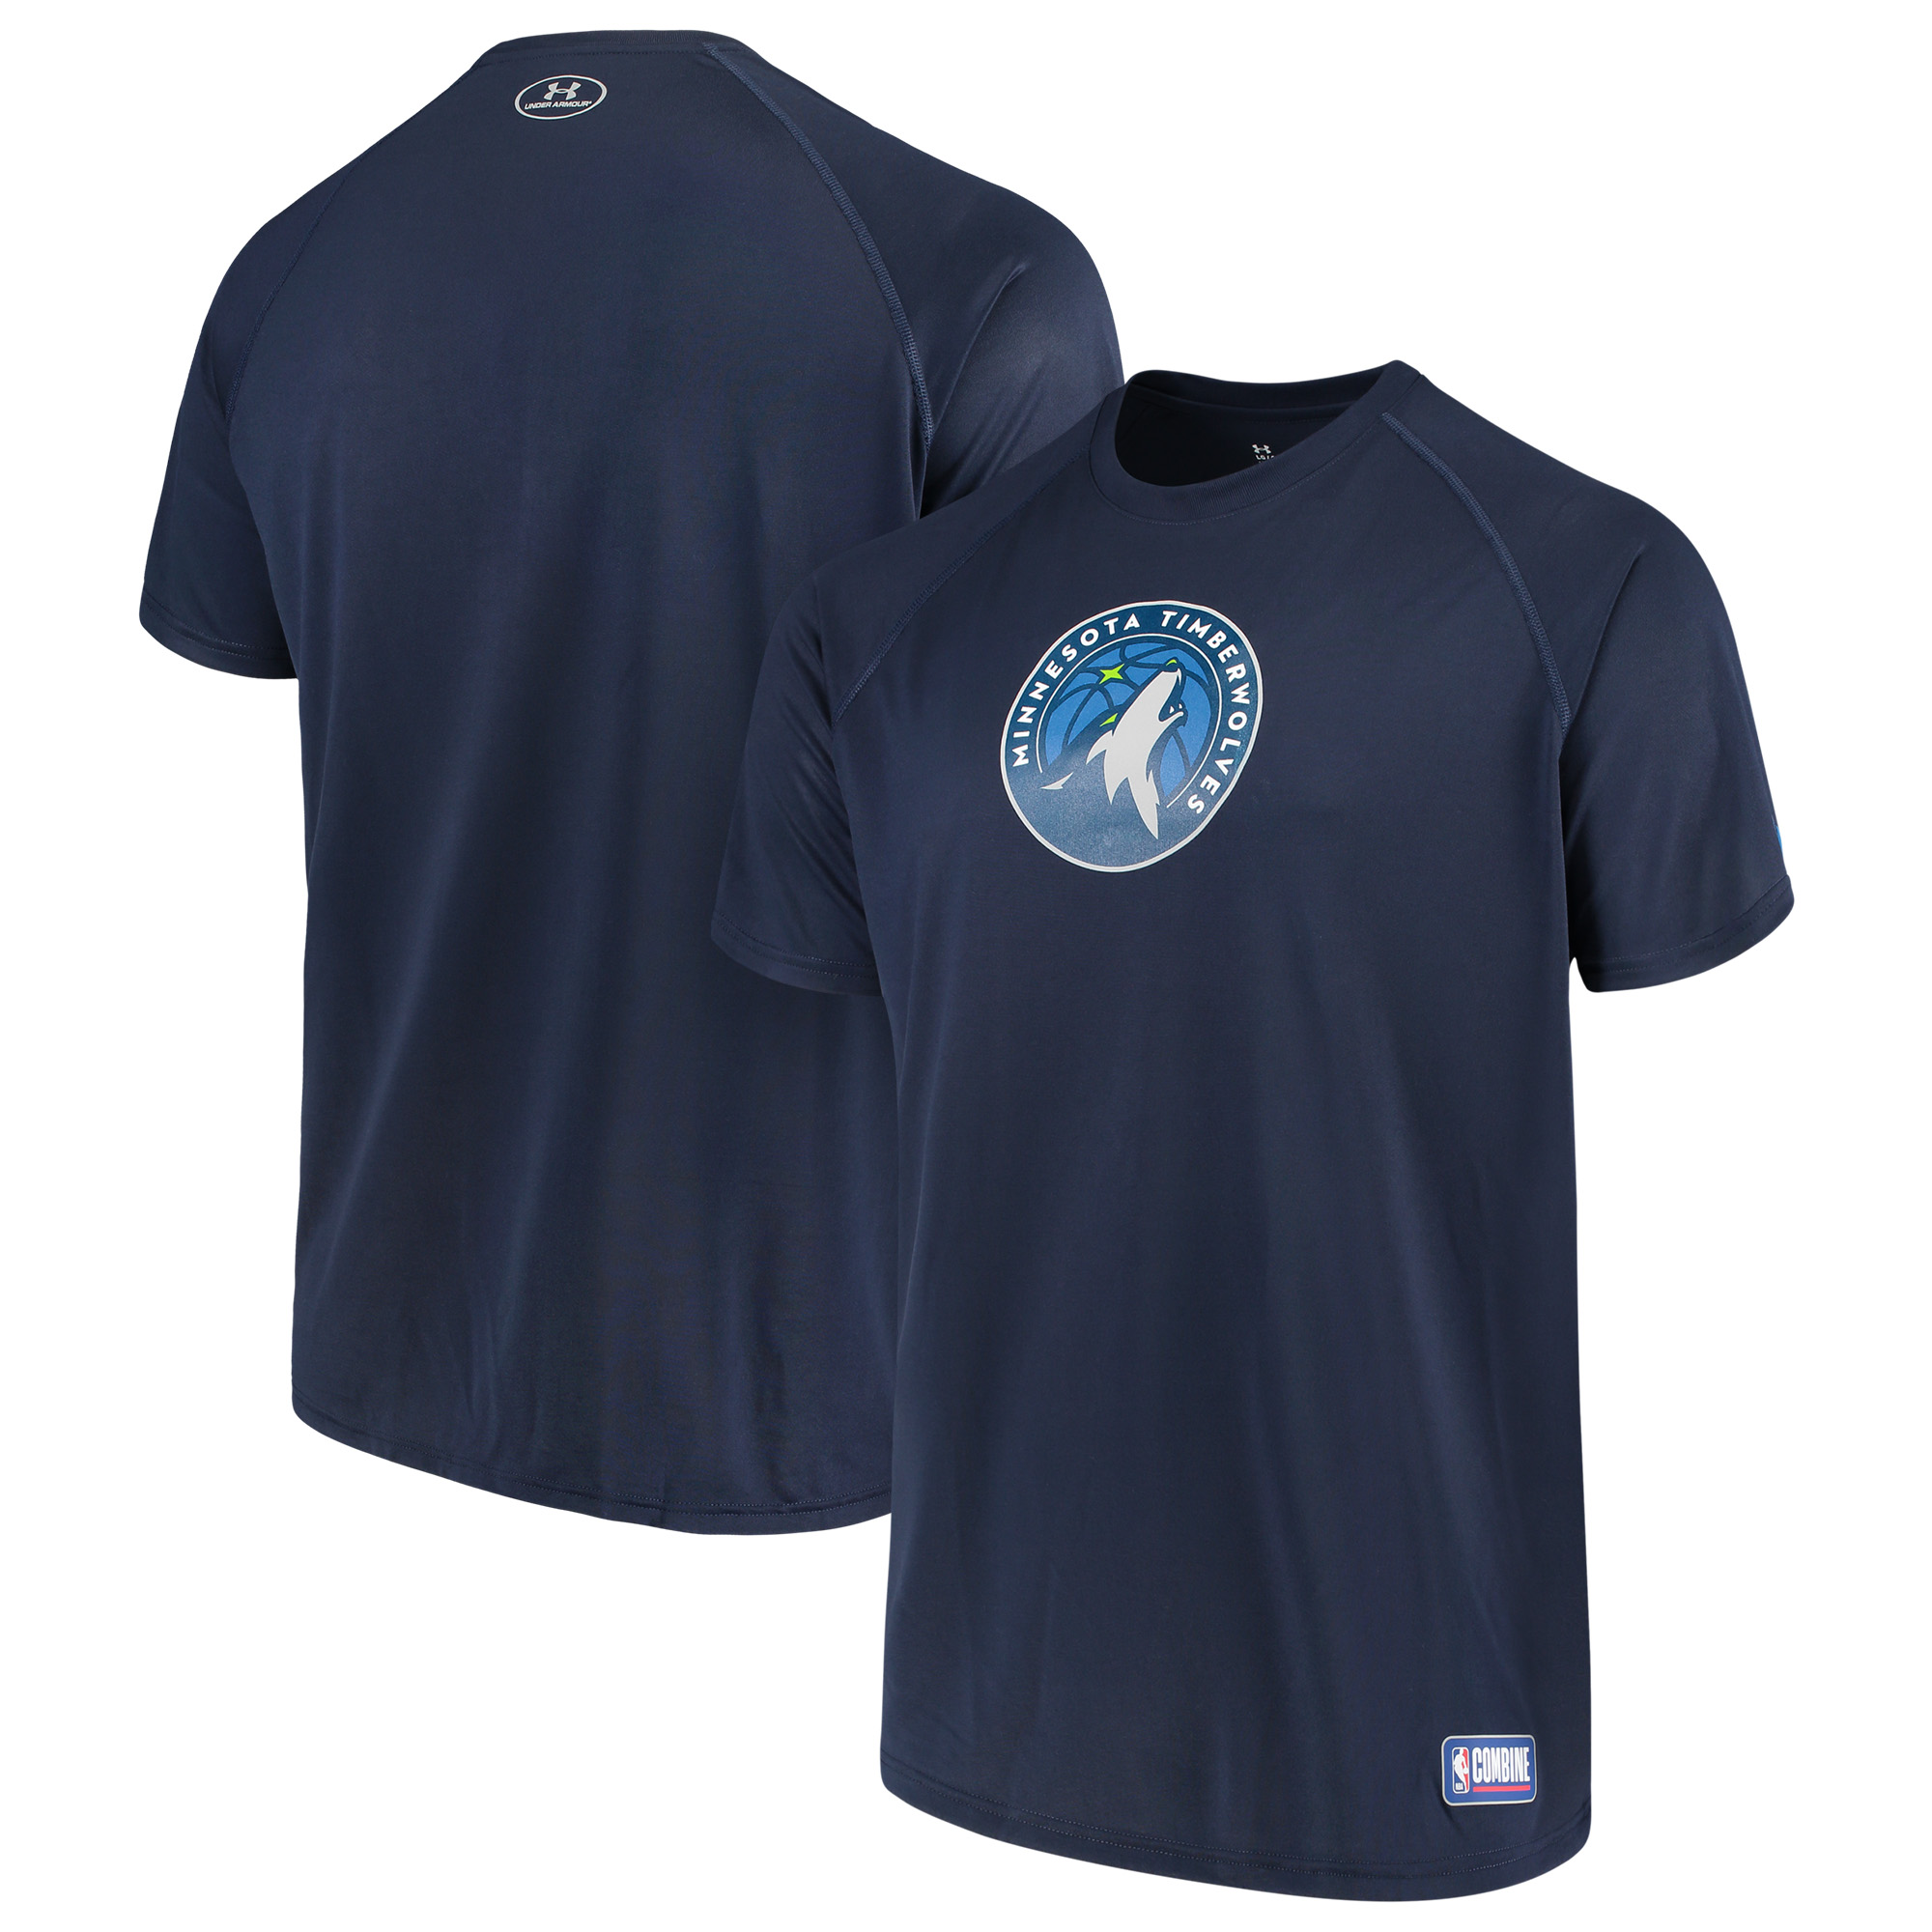 Minnesota Timberwolves Under Armour Combine Authentic Primary Logo Performance Raglan T-Shirt - Navy